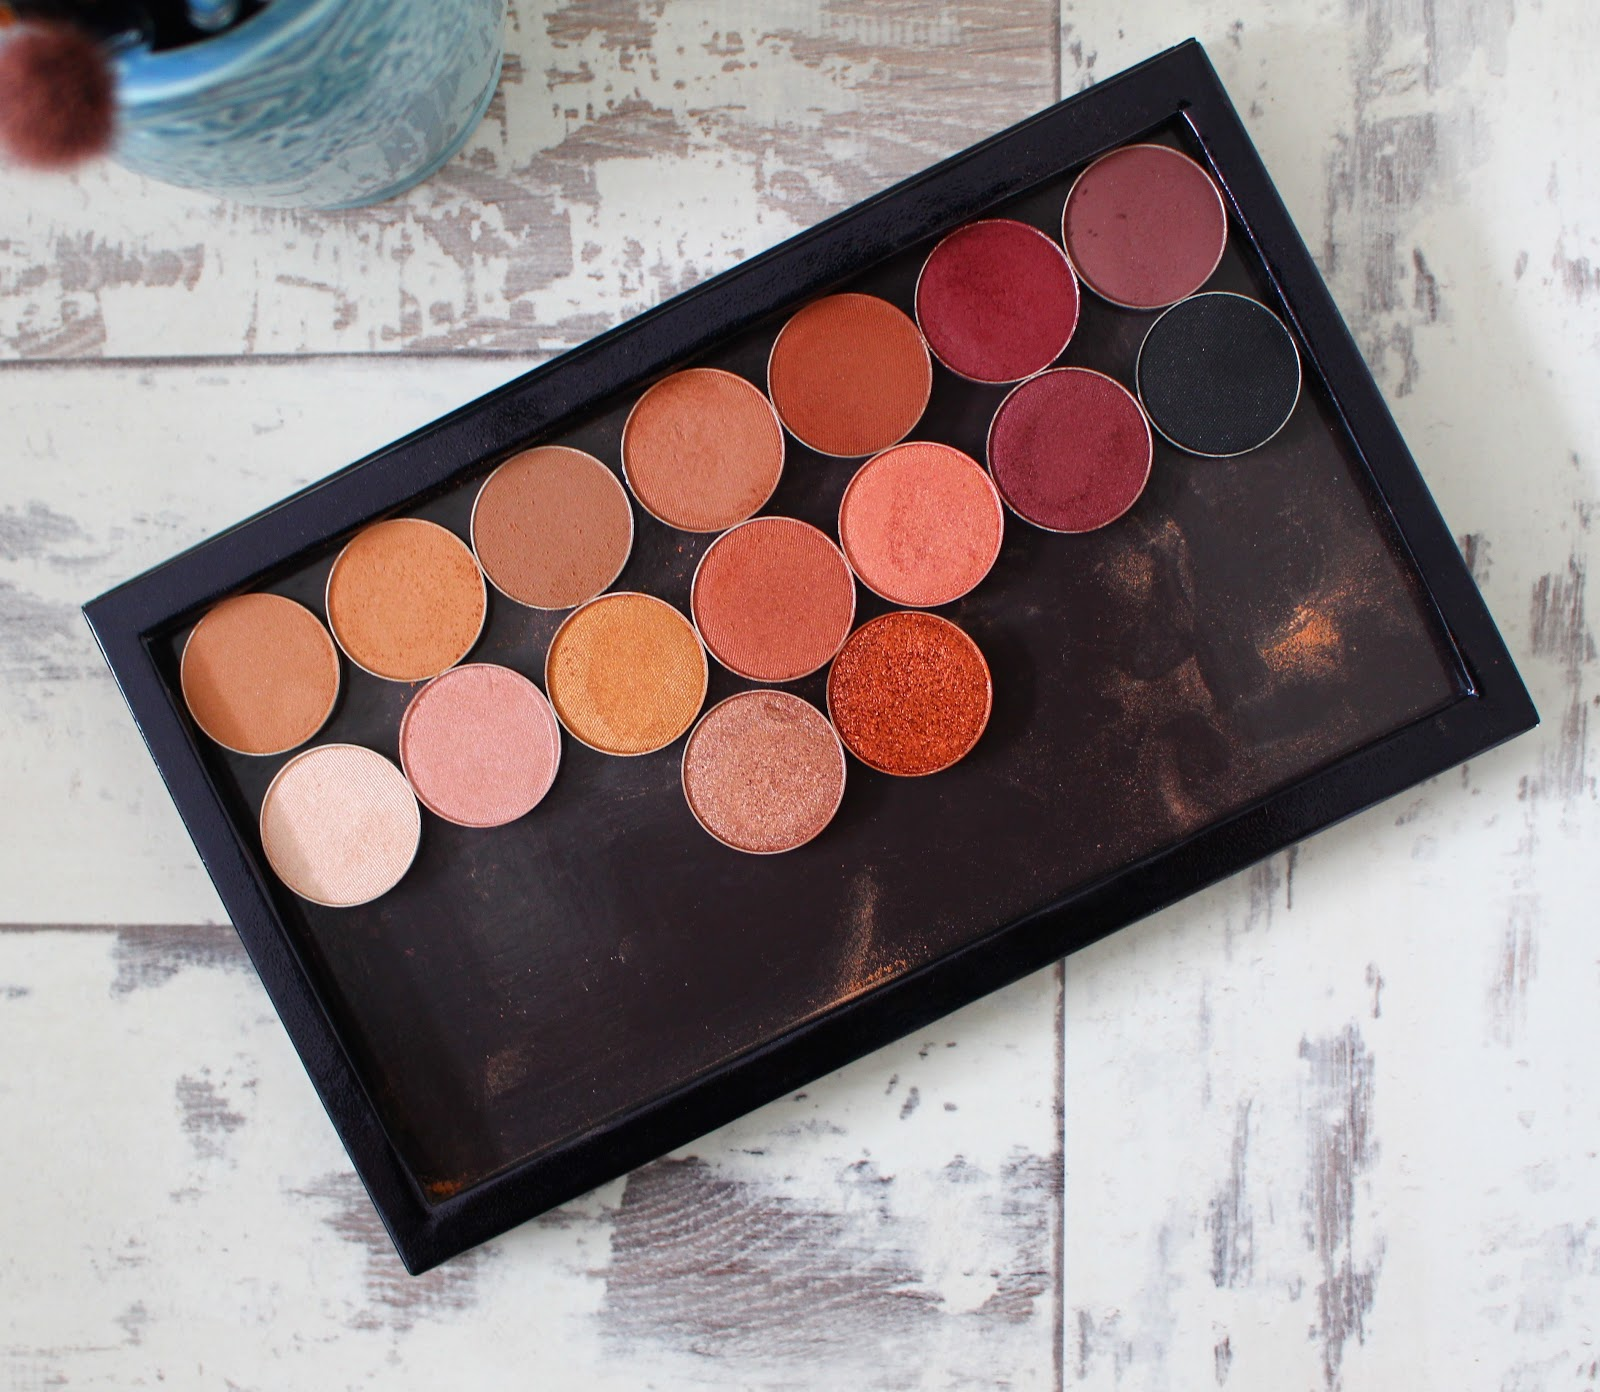 Makeup Geek Review, Makeup Geek Swatches